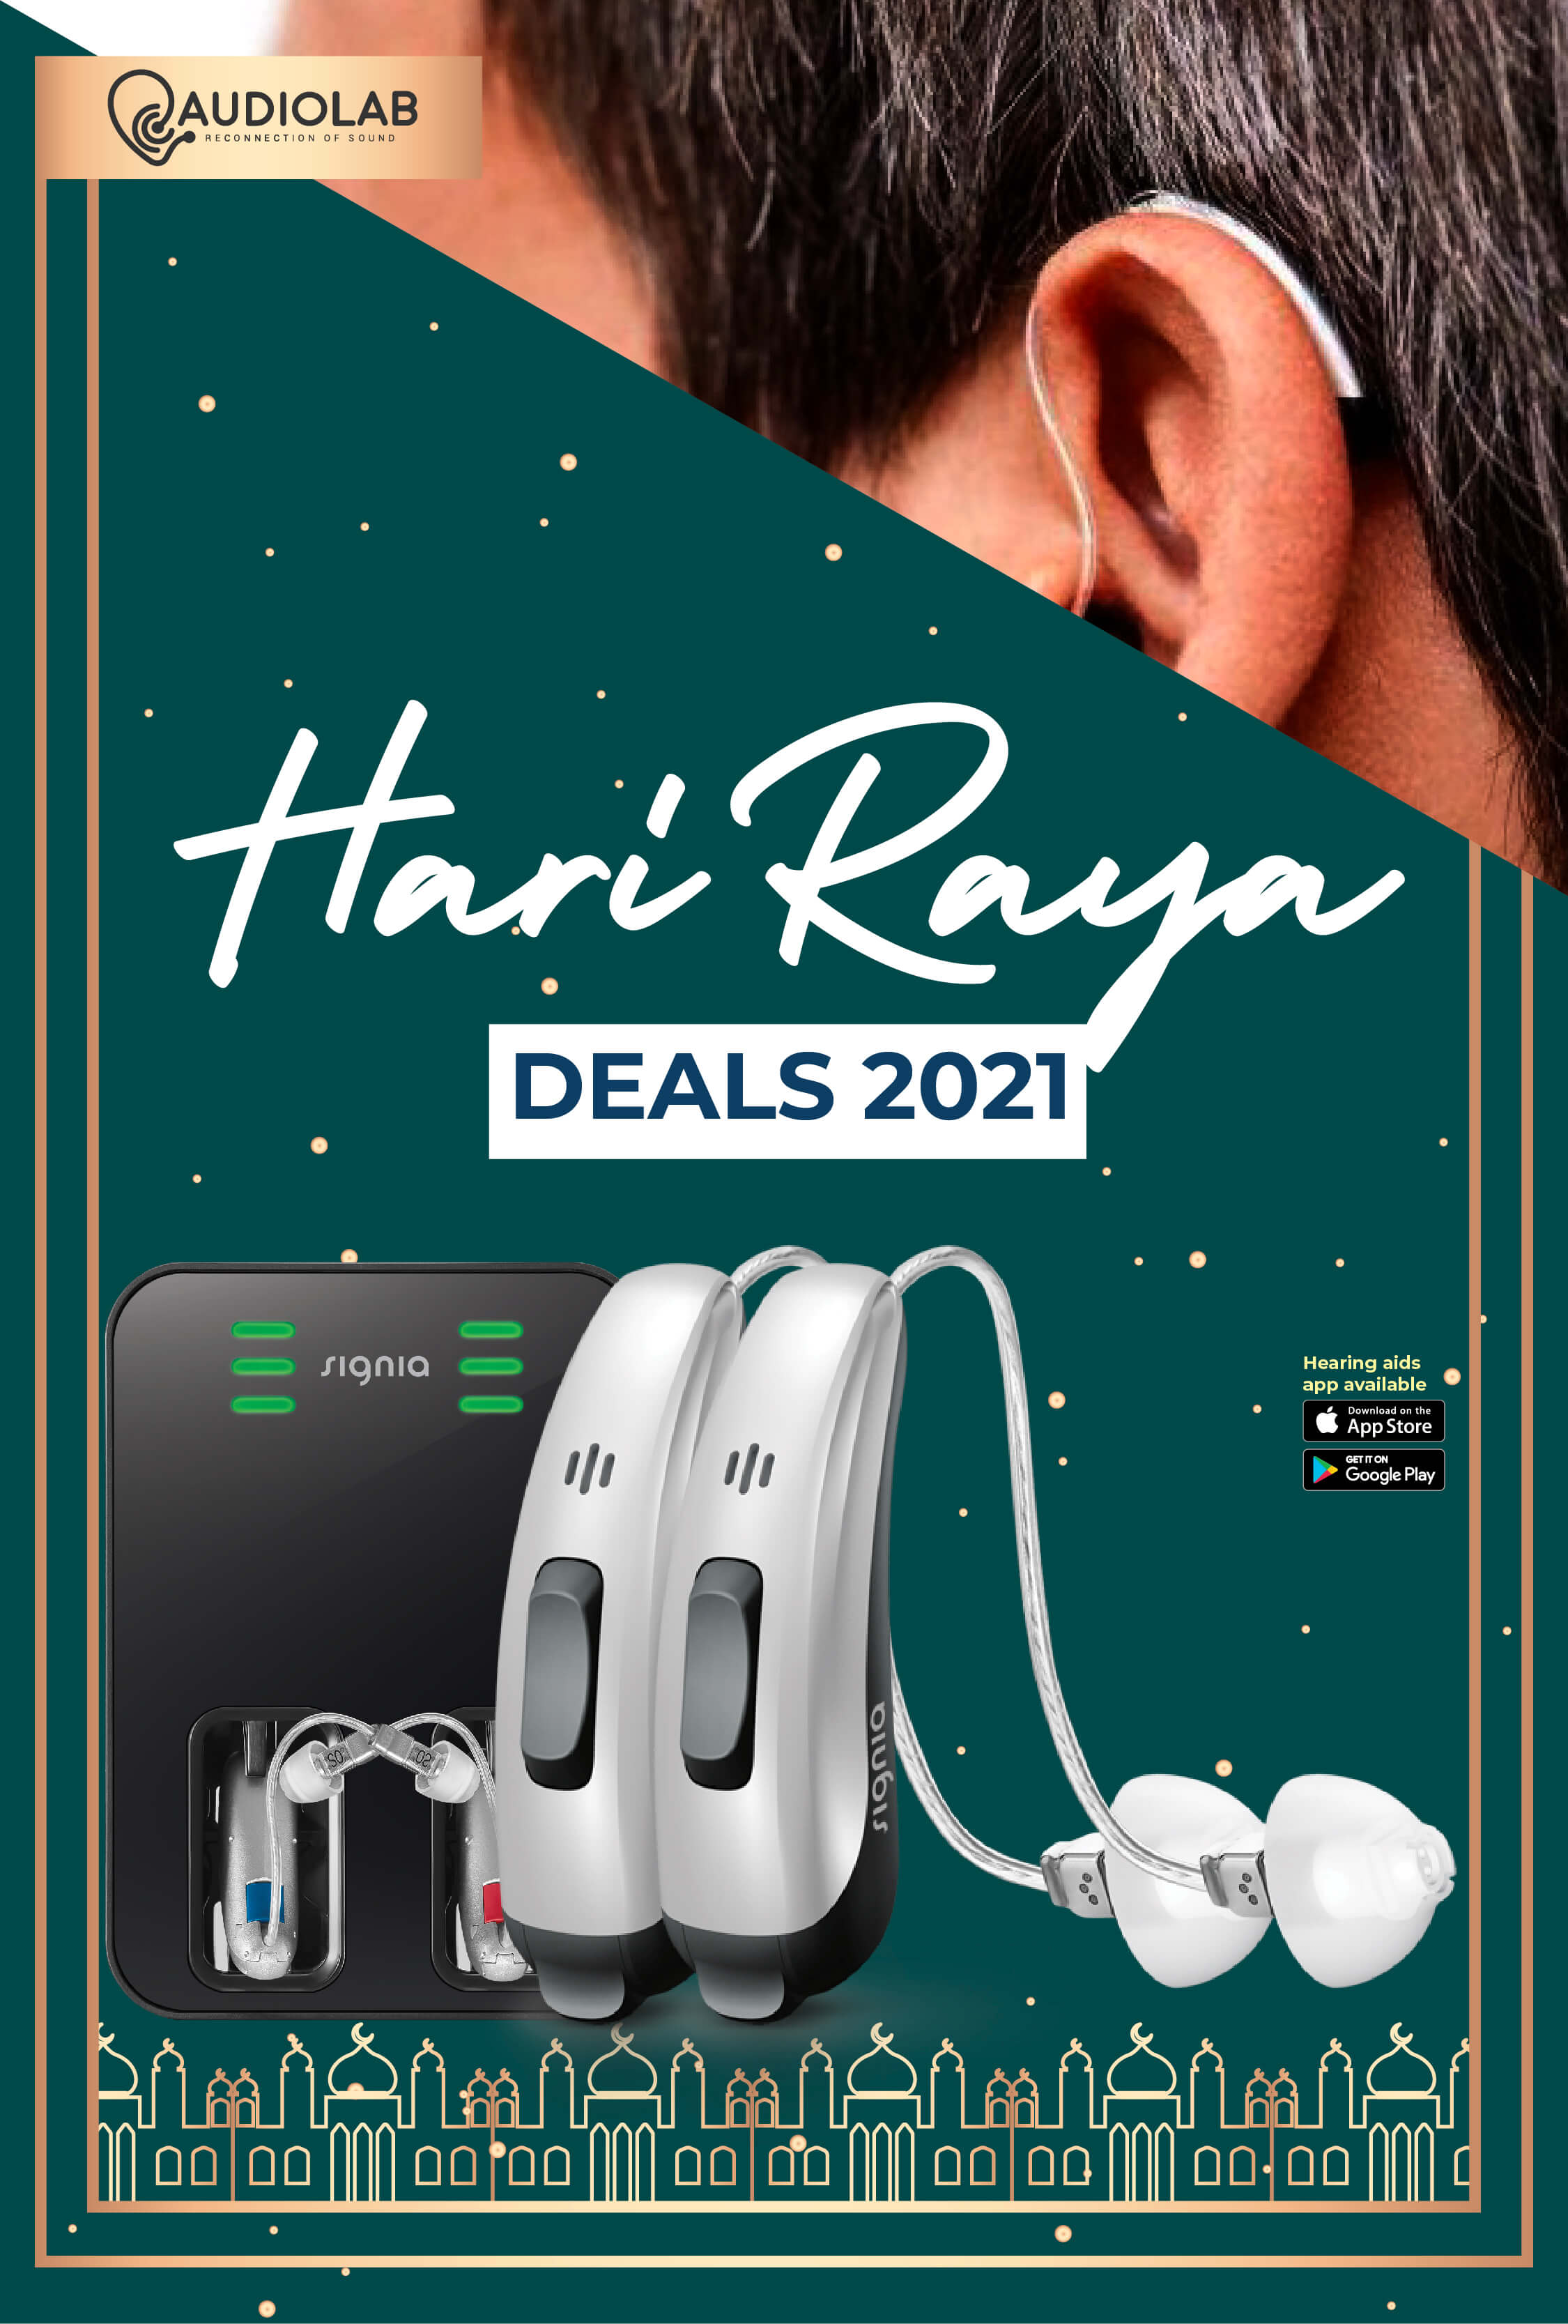 Audiolab Raya Deals 2021 - Mobile